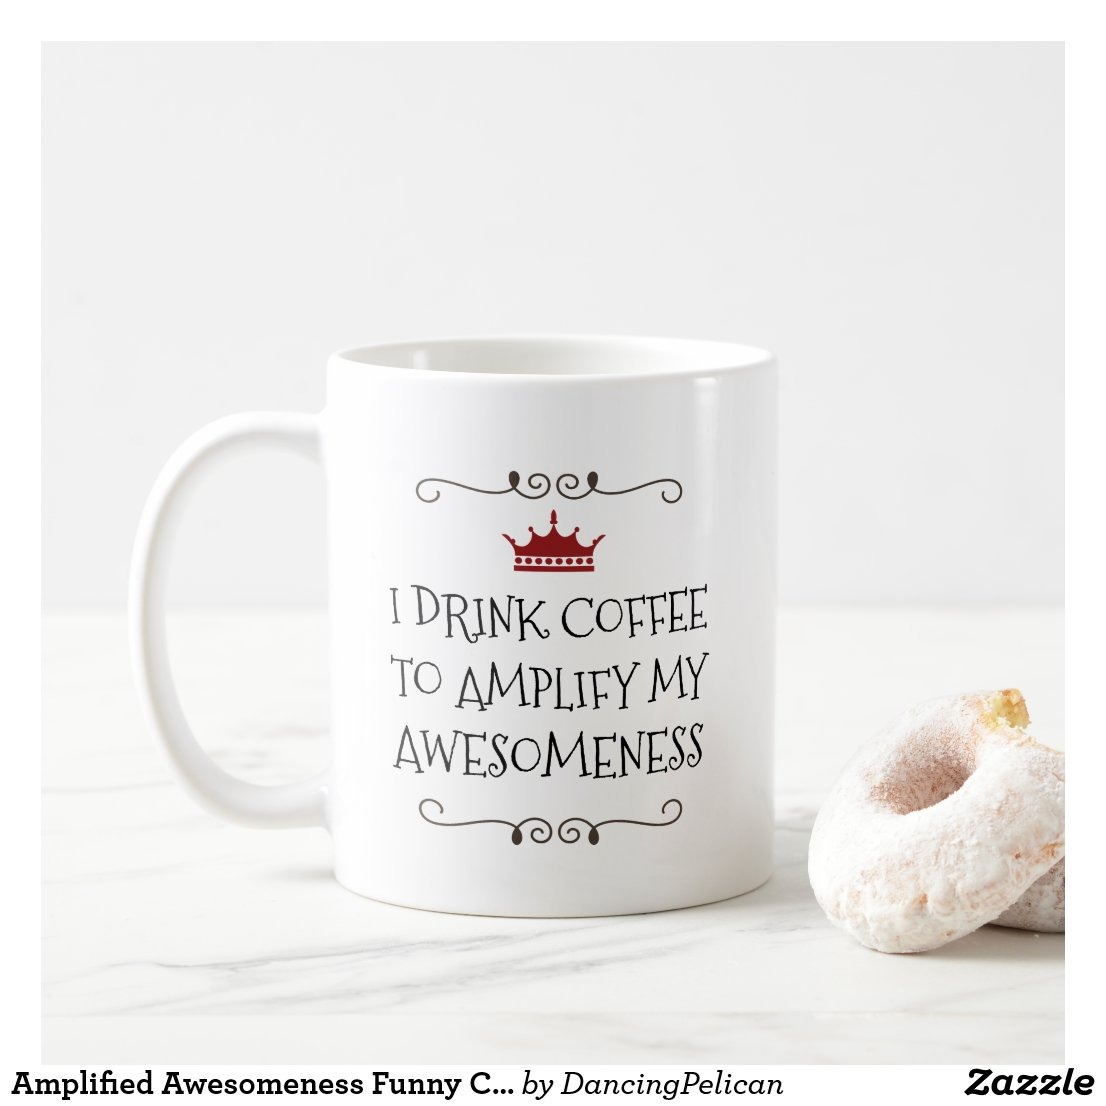 Amplified Awesomeness Funny Coffee Quote Coffee Mug